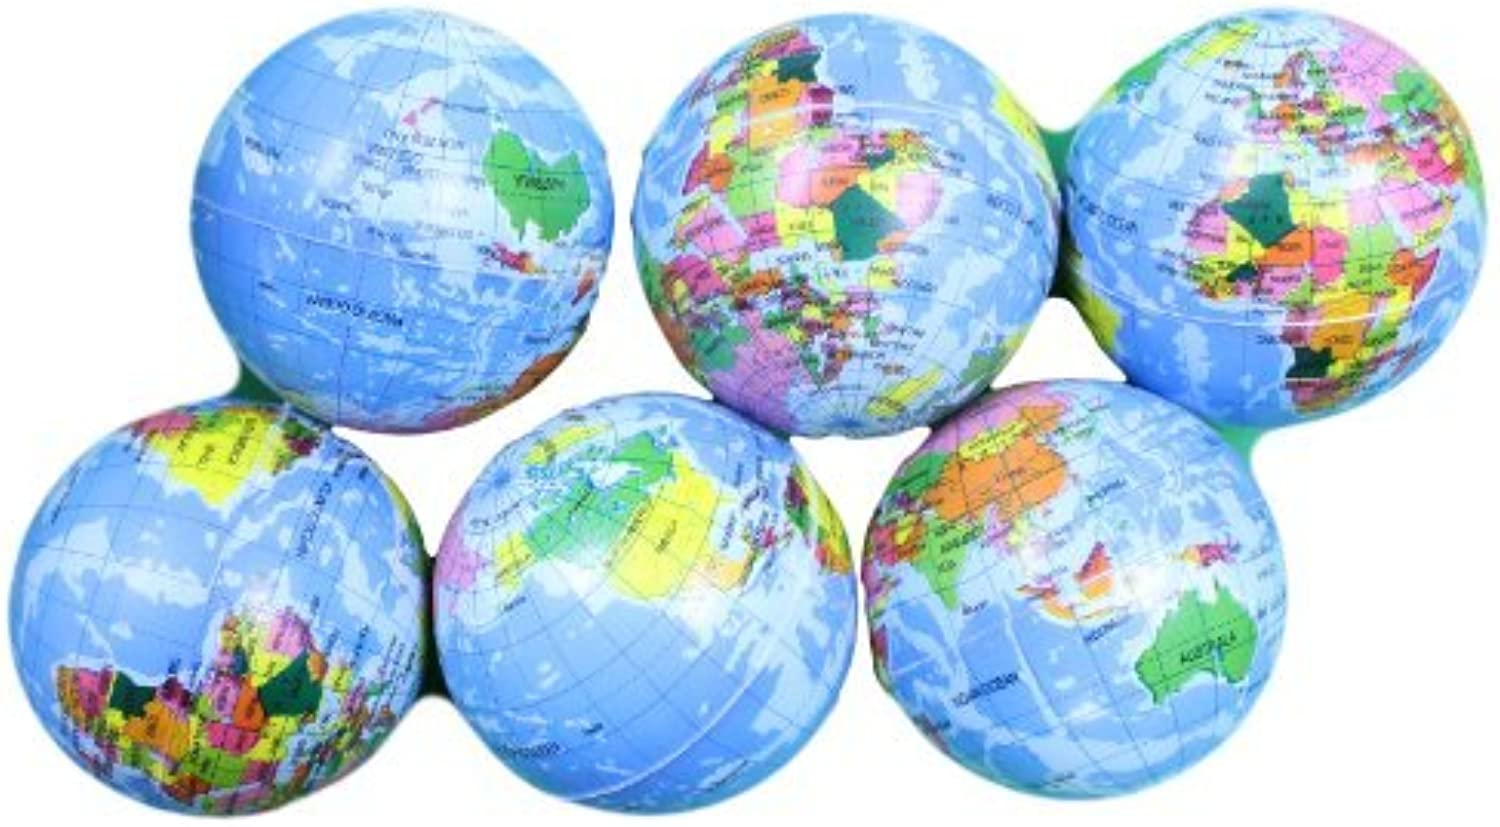 4 Inch Foam Stress Earth Globe Balls Lot of 6 Pieces (Great for classrooms ) by Wii